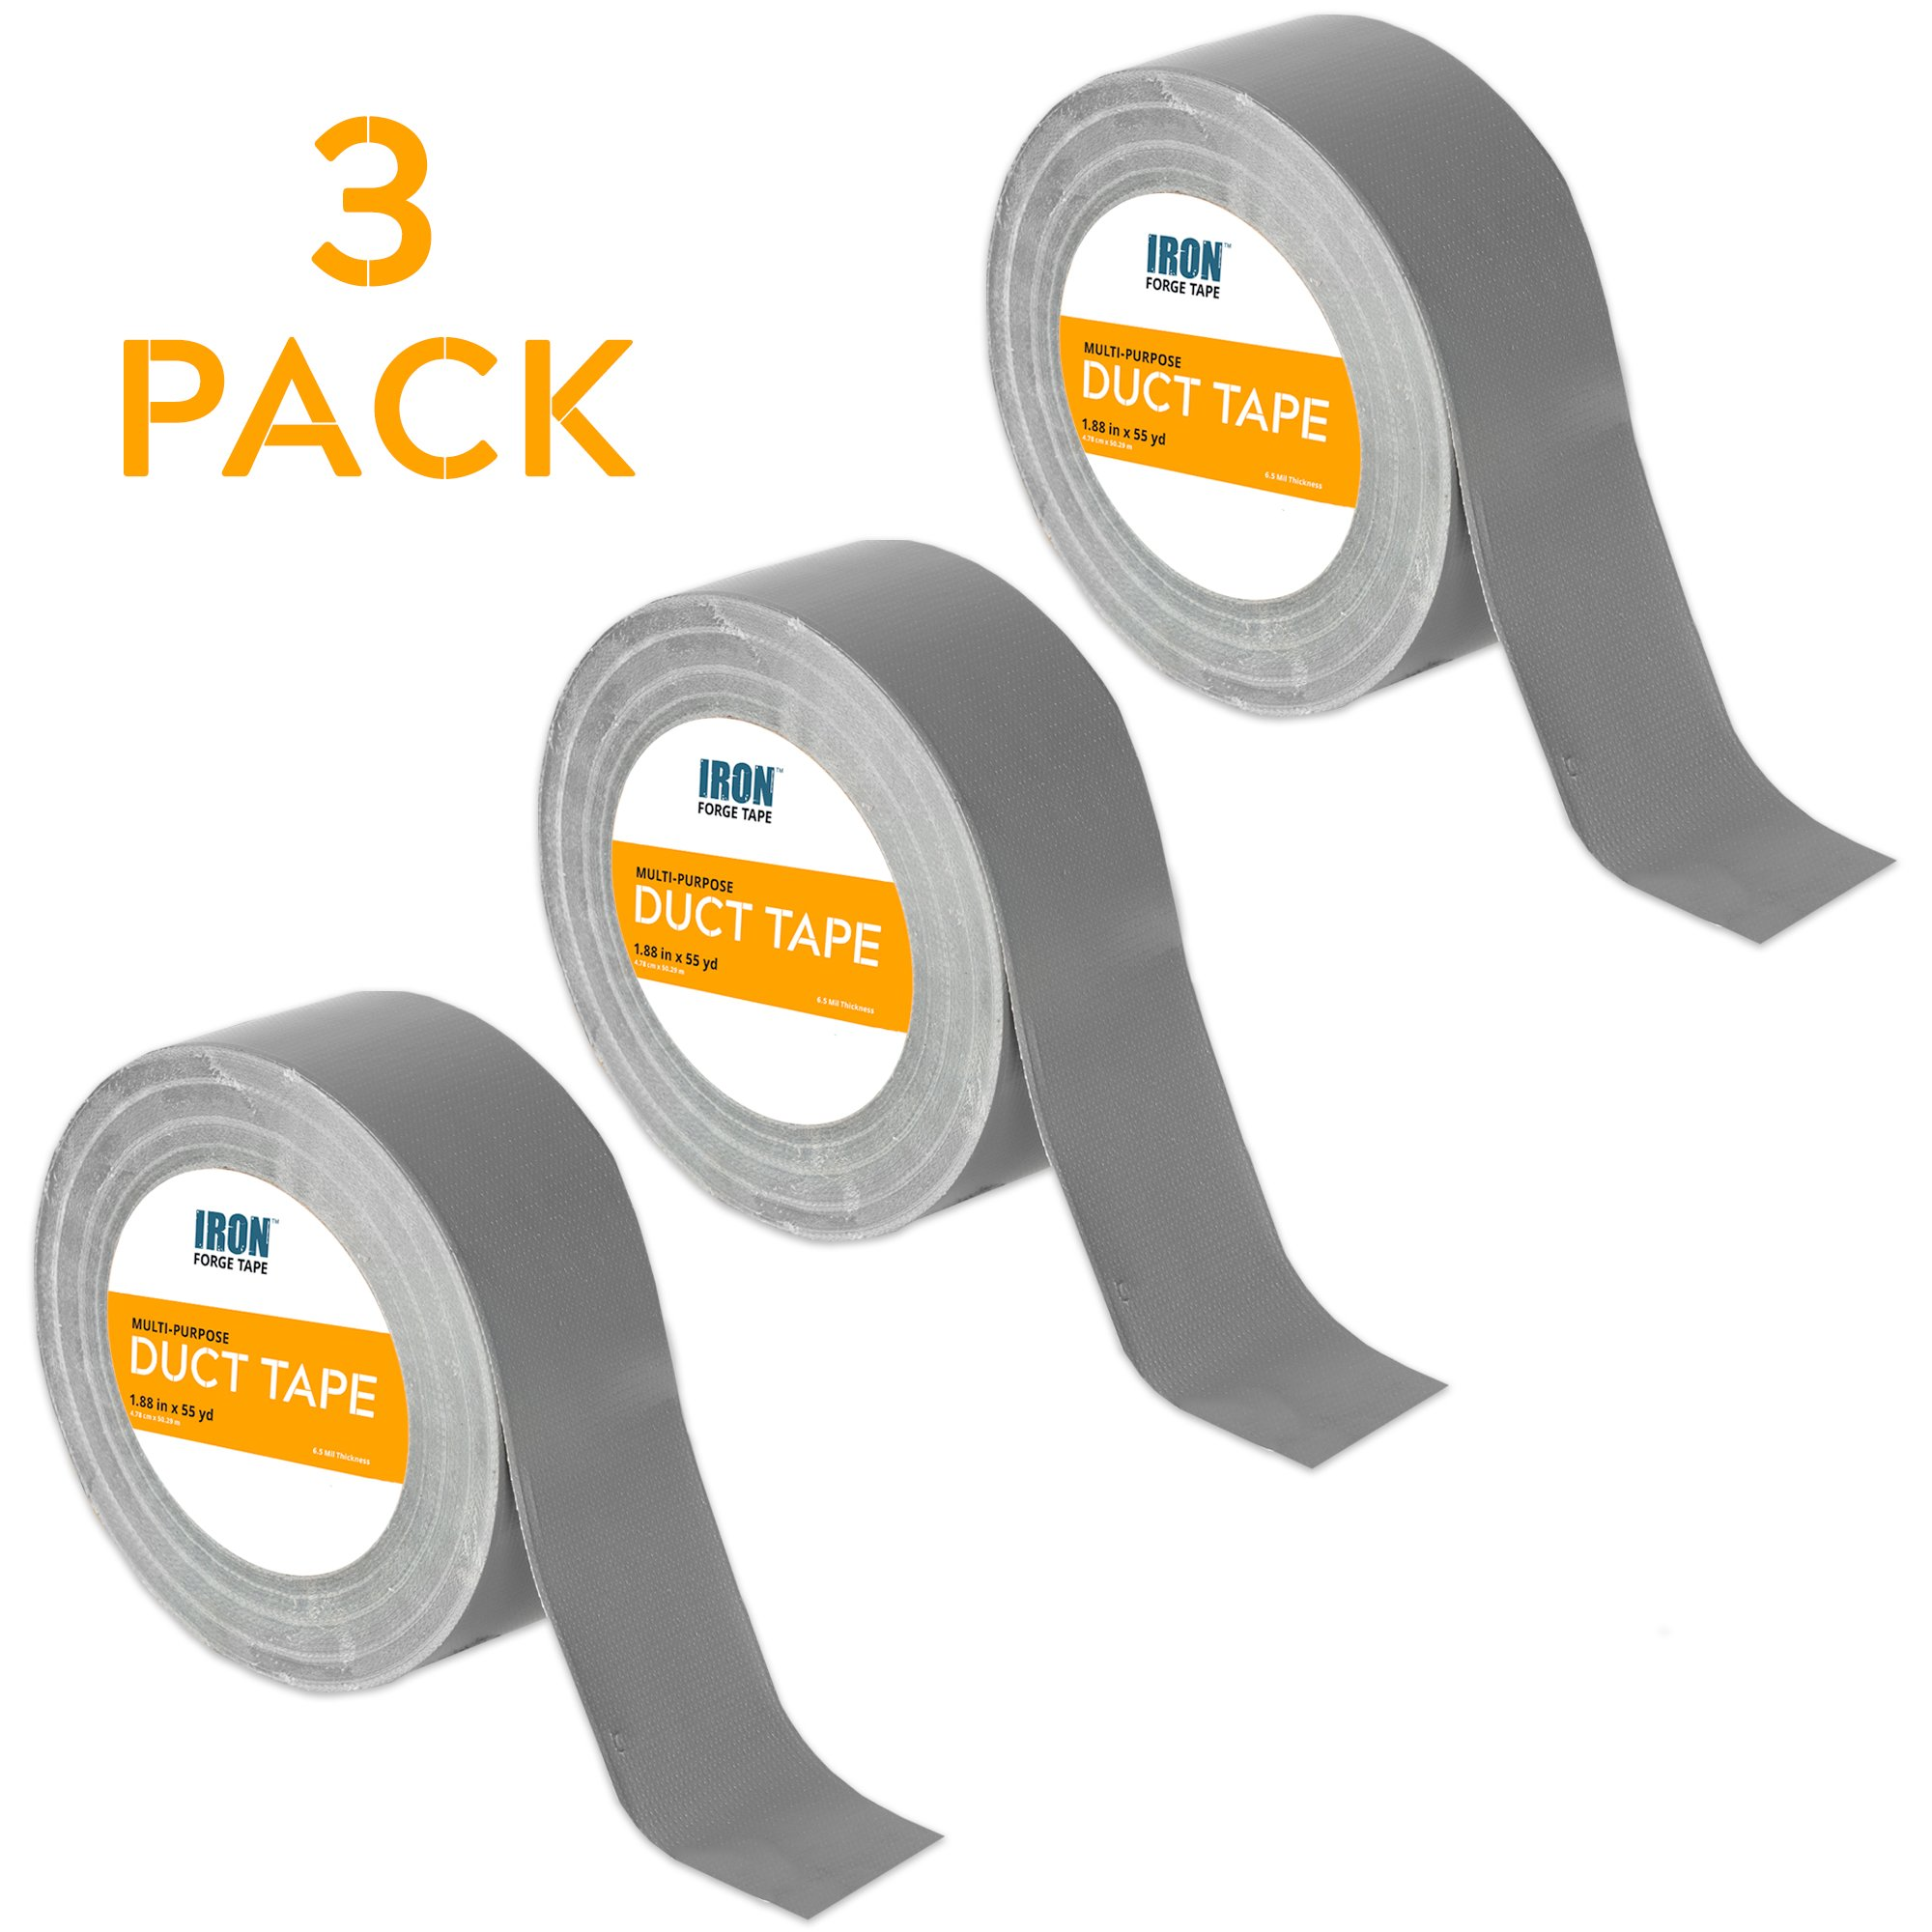 Duct Tape Roll 3 Pack for HVAC, Air Ducts & More - 1.88 Inch x 55 Yards